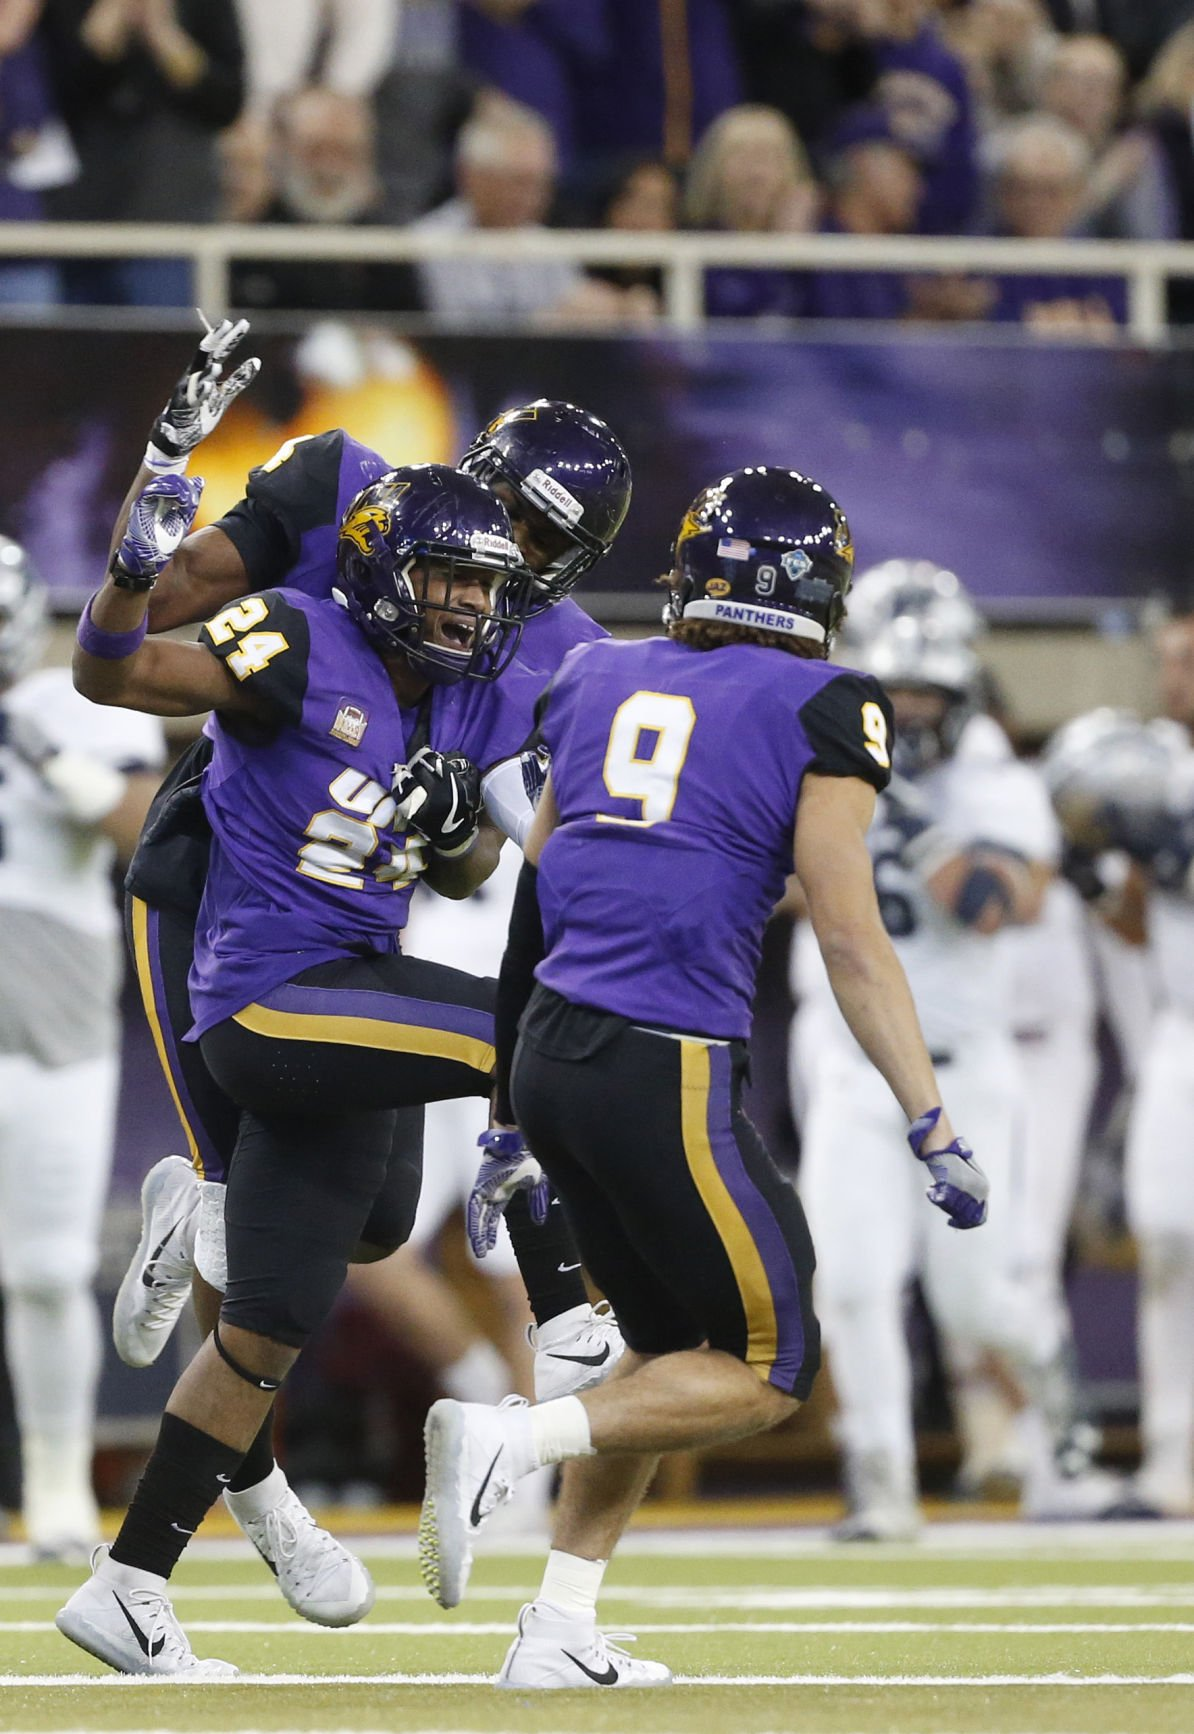 112517mp-UNI-Monmouth-fcs-18